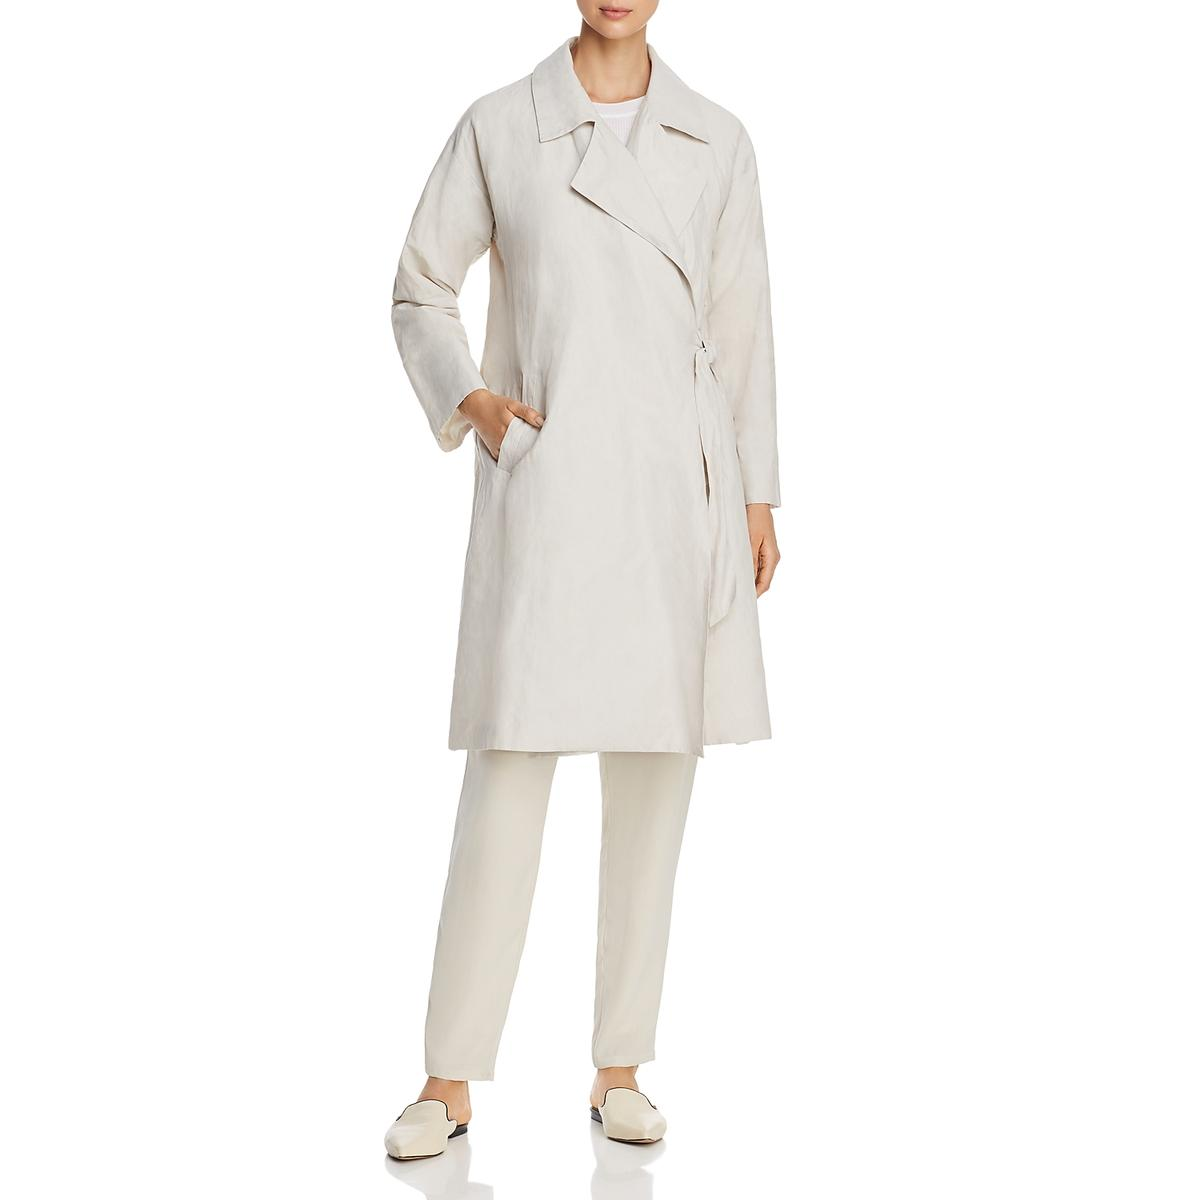 Eileen Fisher Womens Side-Tie Collared Jacket Trench Coat BHFO 2172